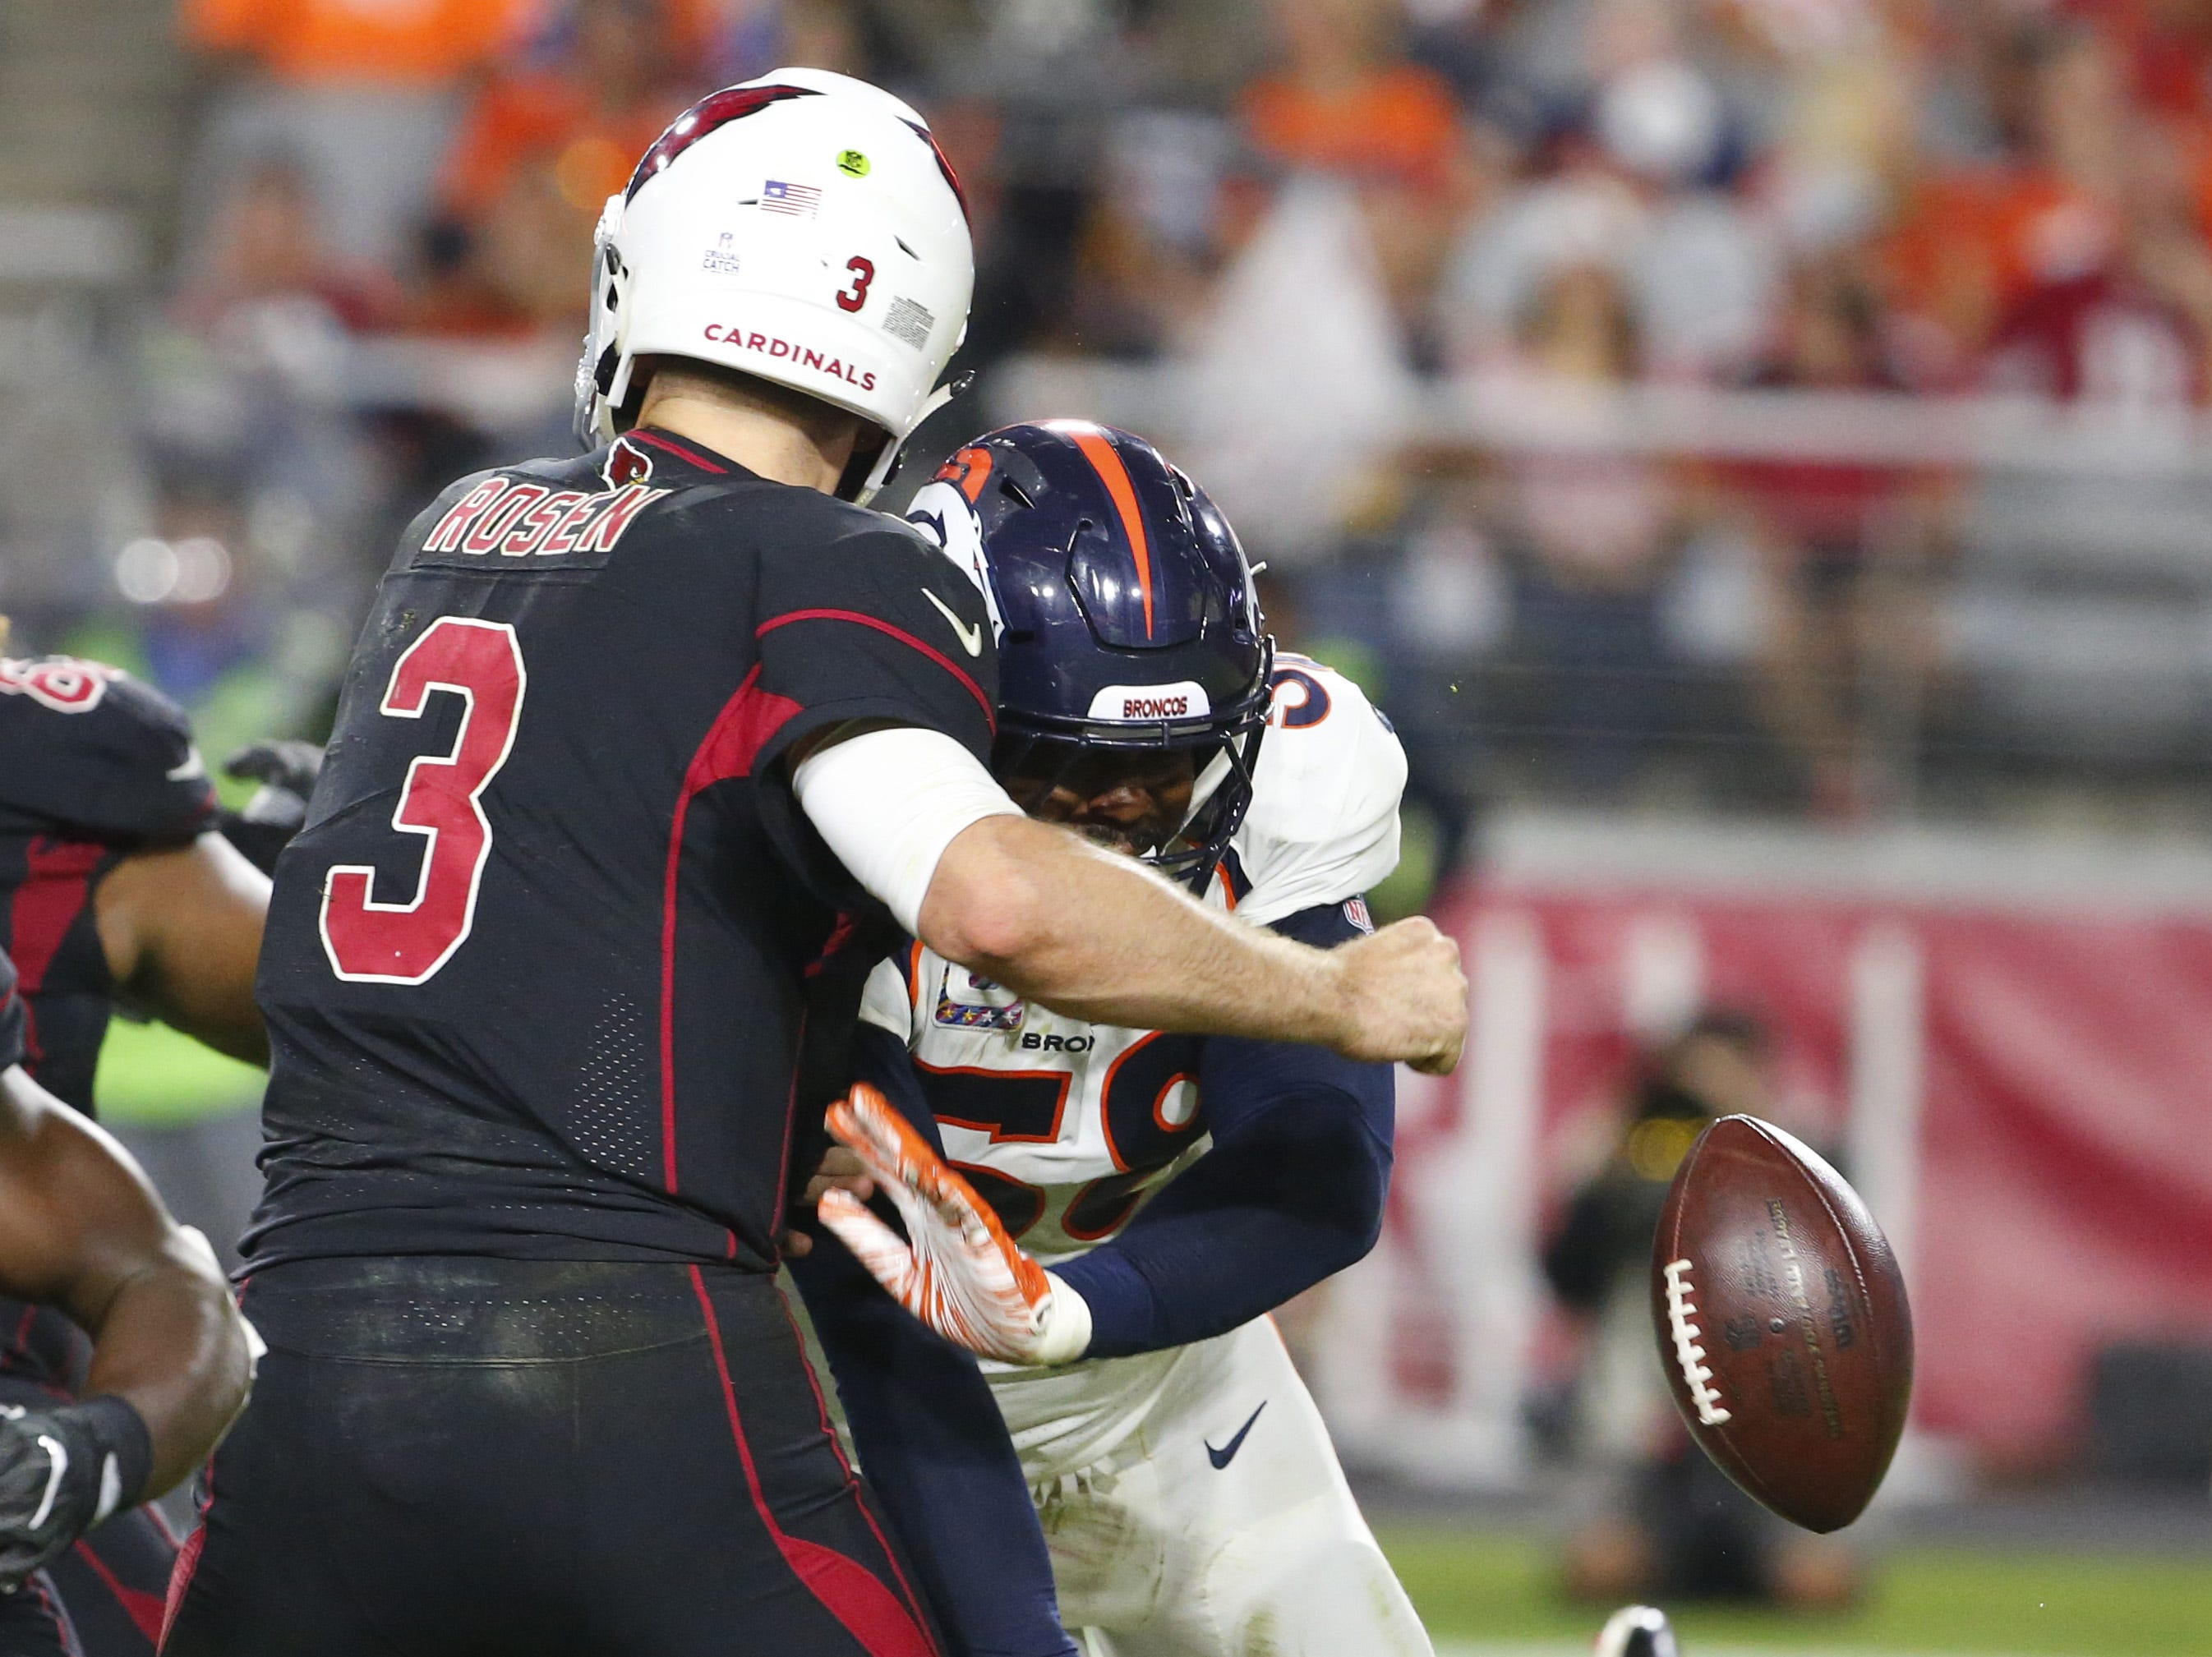 Denver Broncos linebacker Von Miller (58) causes Arizona Cardinals quarterback Josh Rosen (3) to fumble the ball during a football game at State Farm Stadium in Glendale on October 18, 2018.